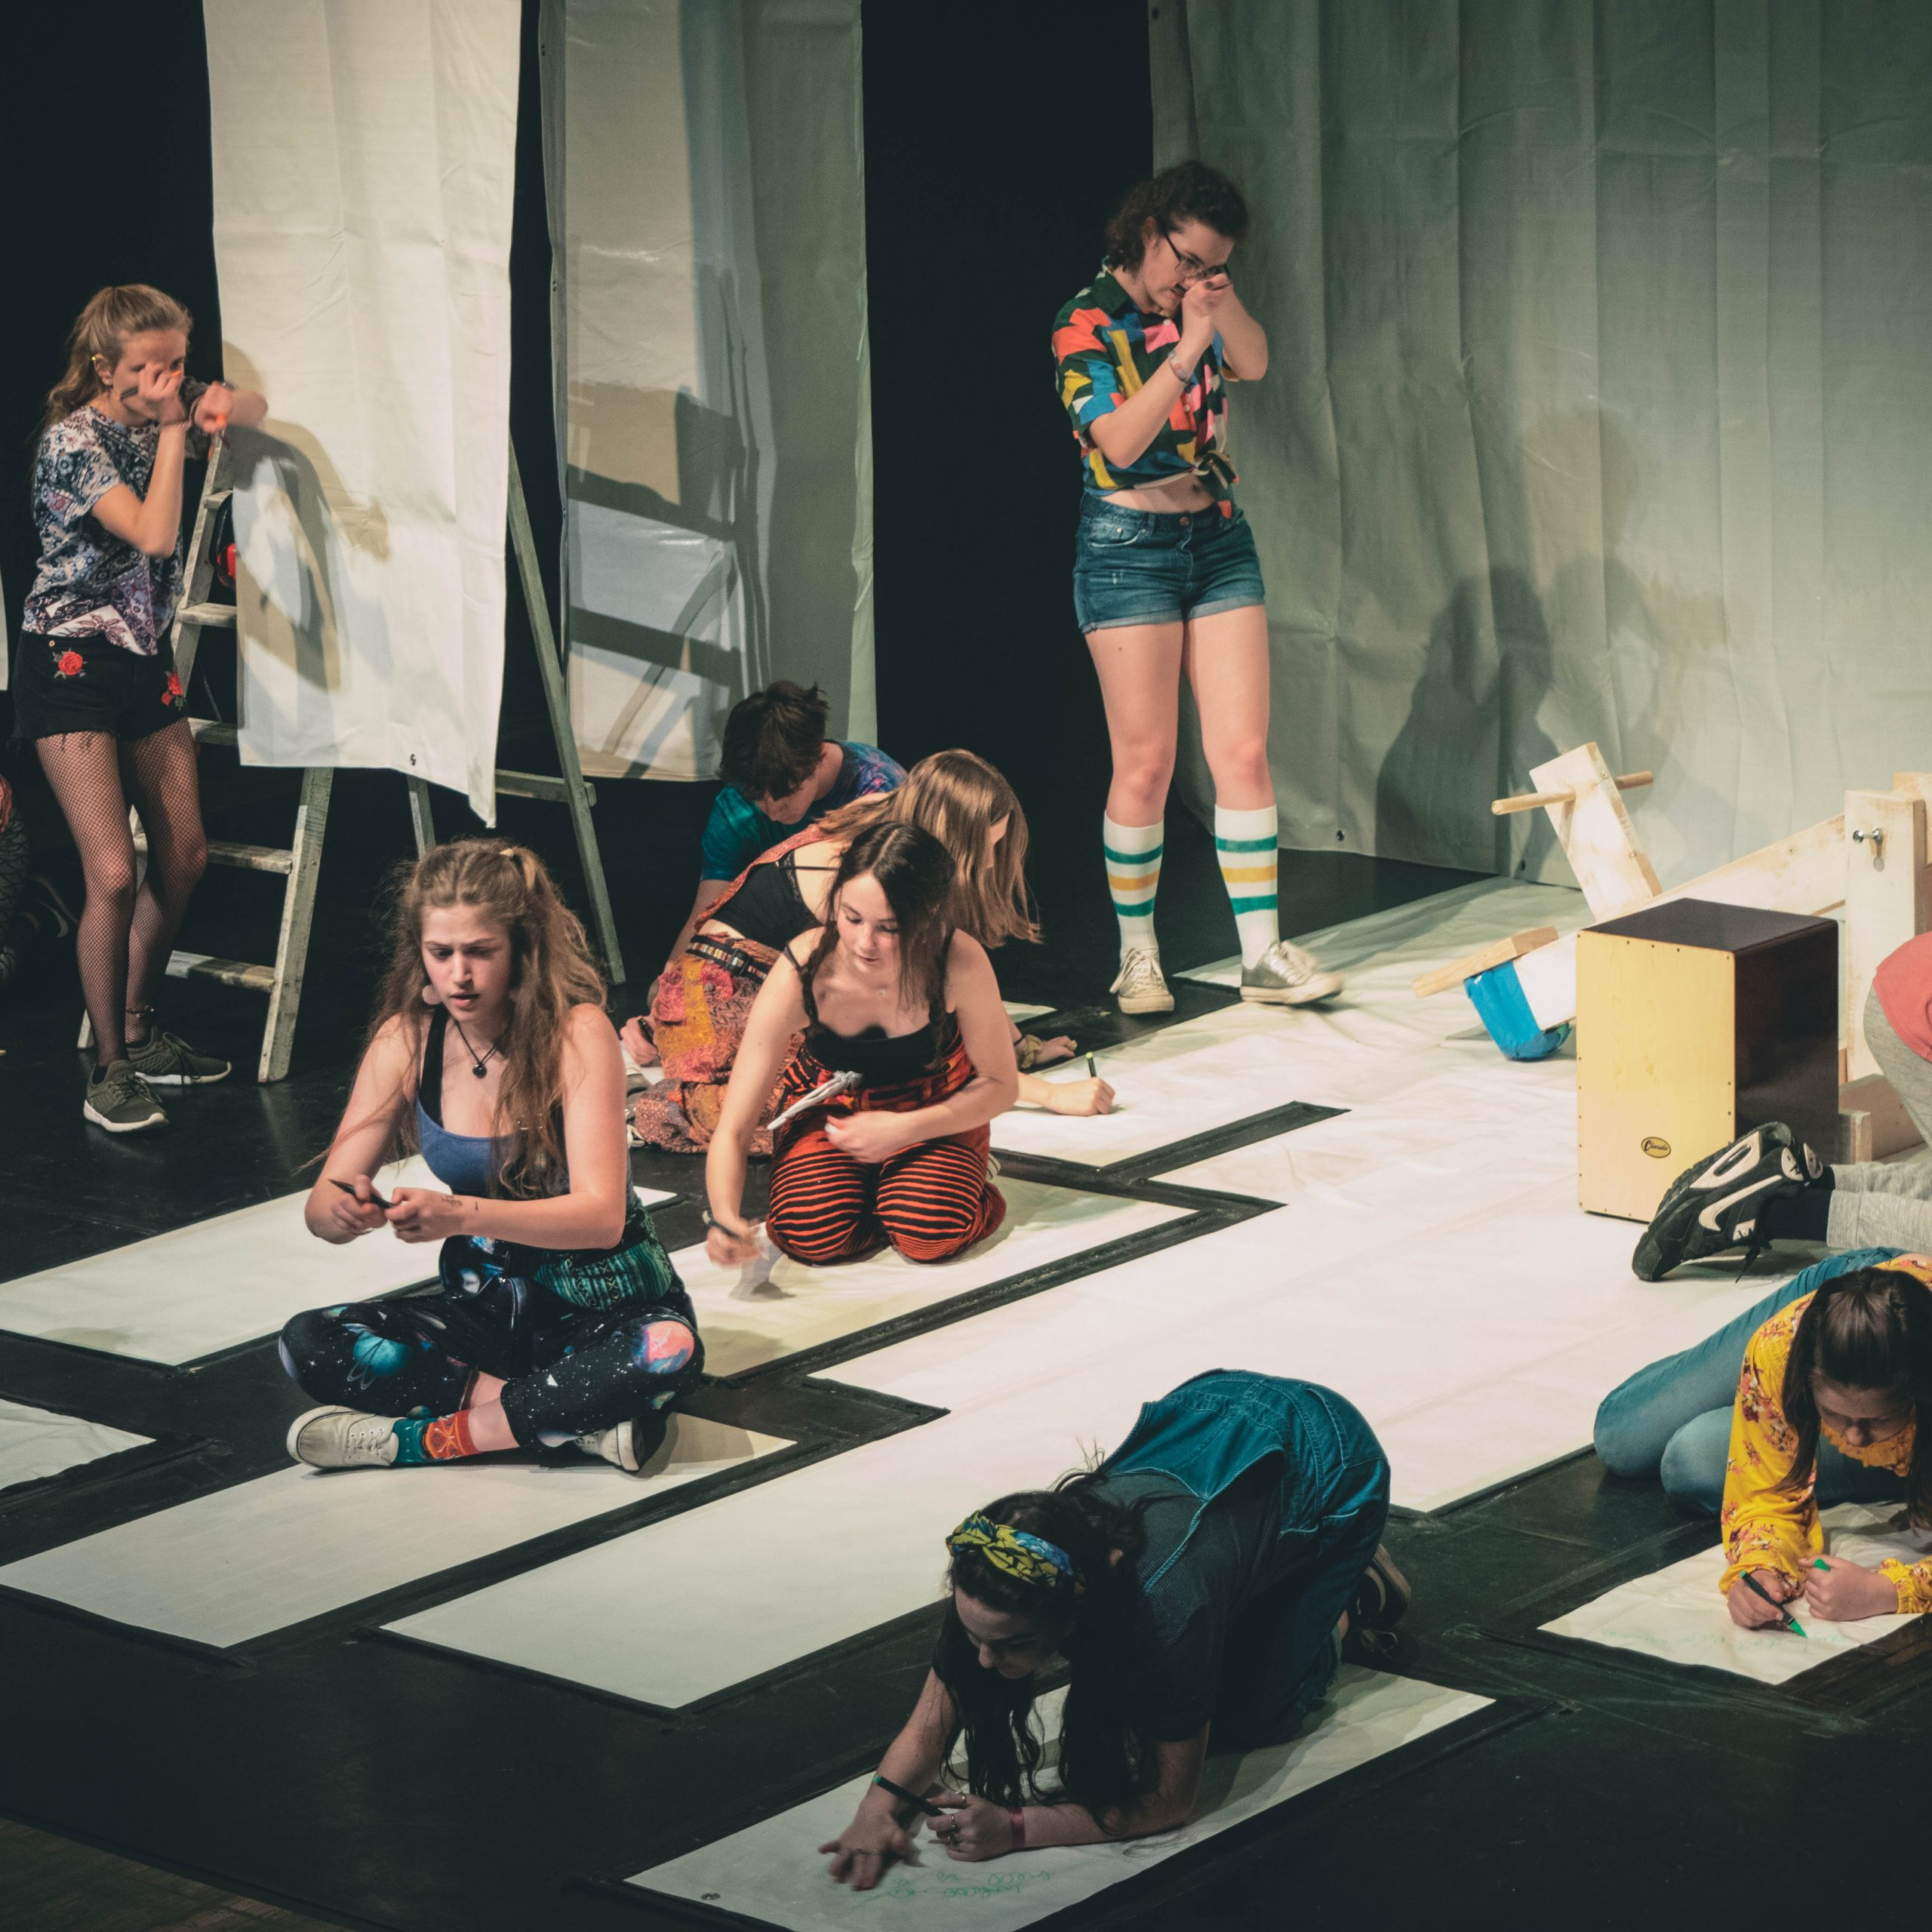 Photo of several young people taking part in a theatre show, many of them are drawing on large pieces of paper